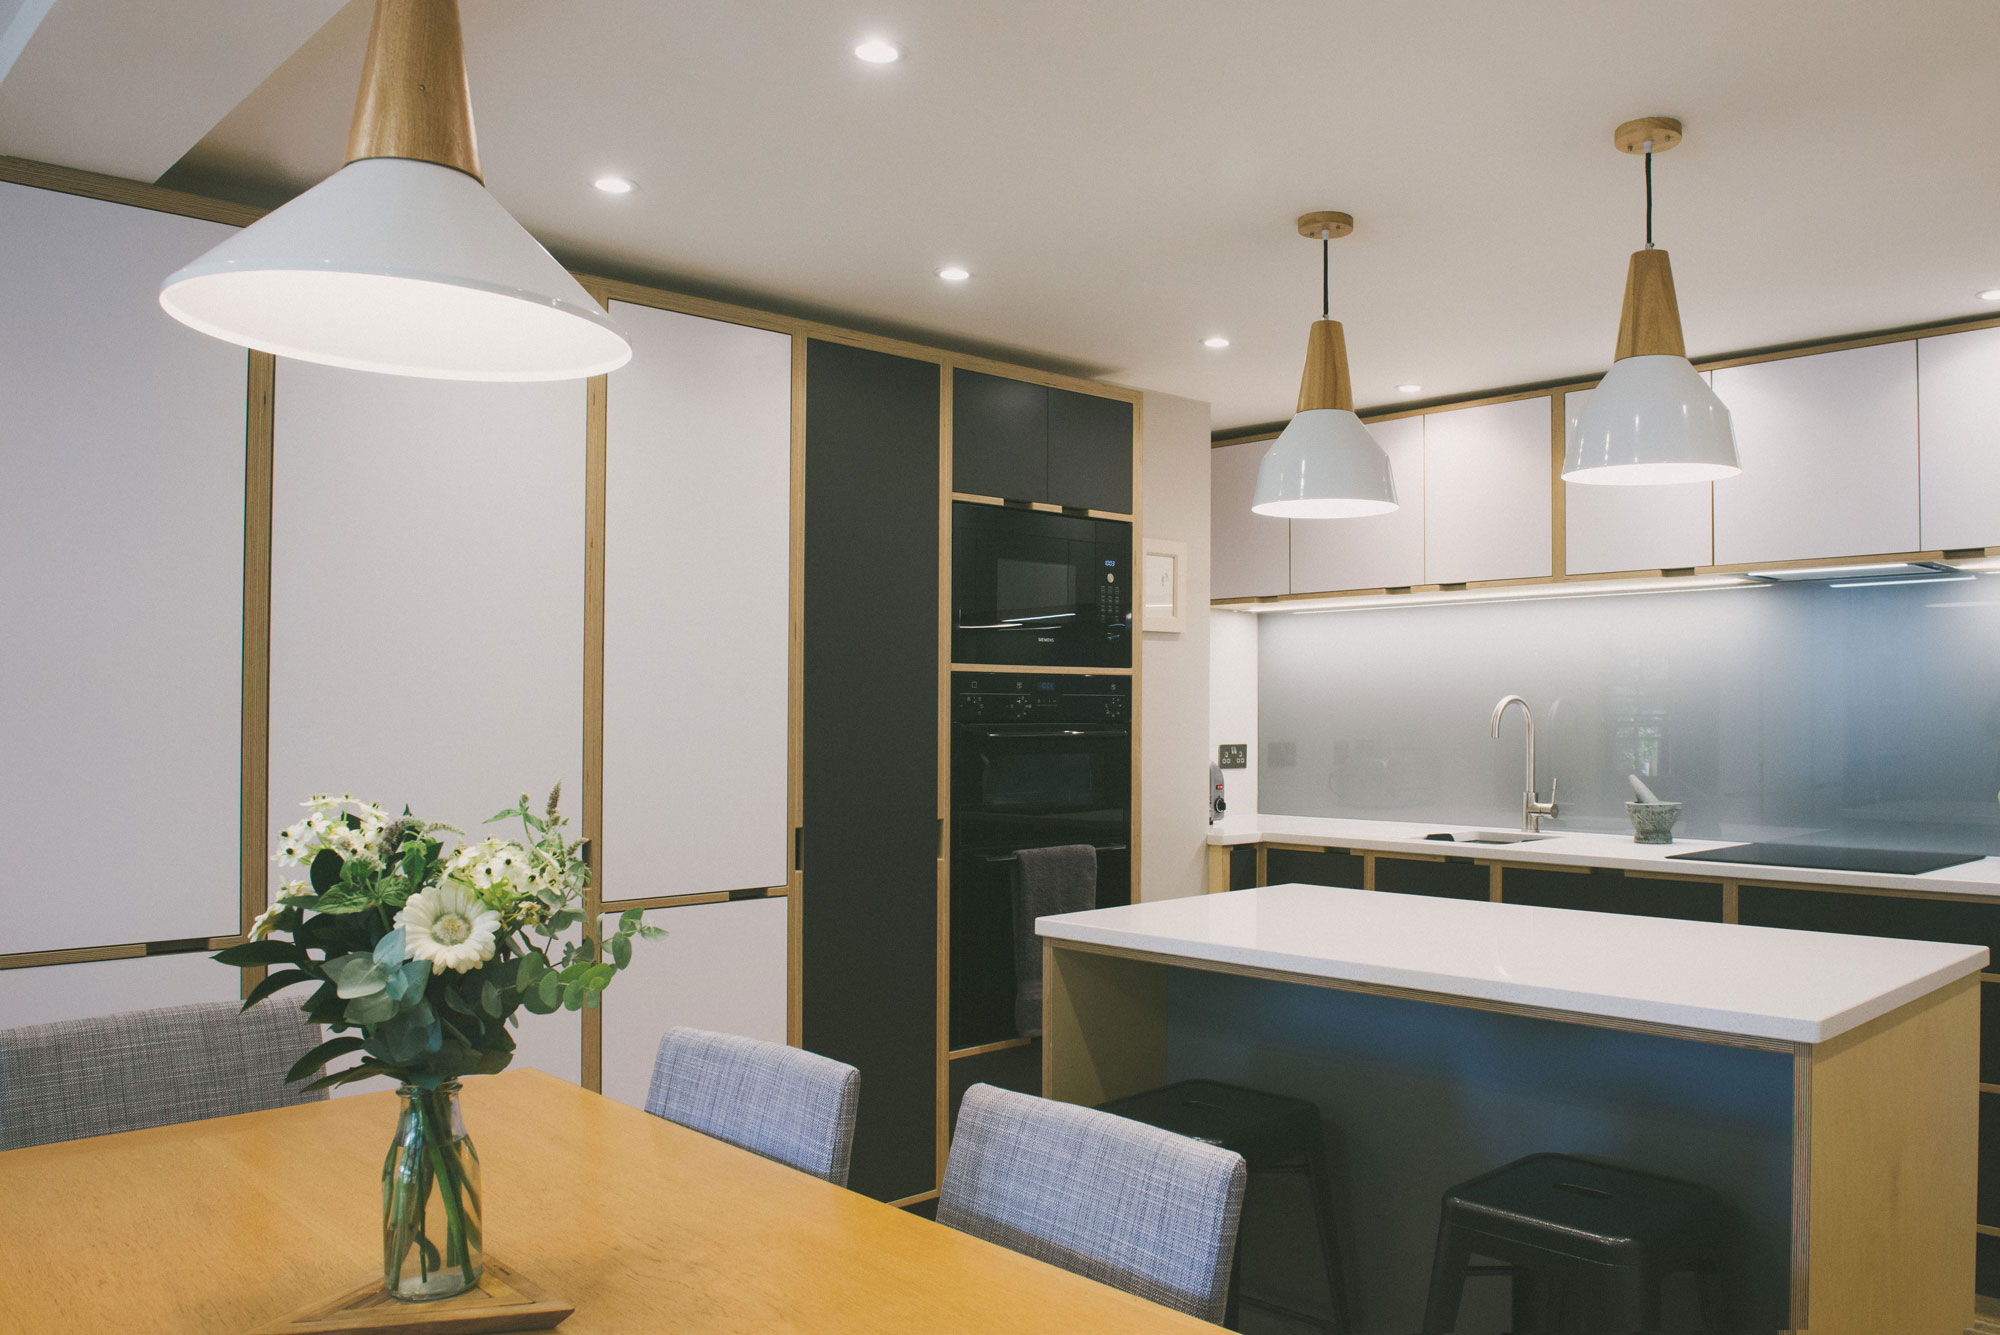 Grey and white kitchen - made of laminate face plywood